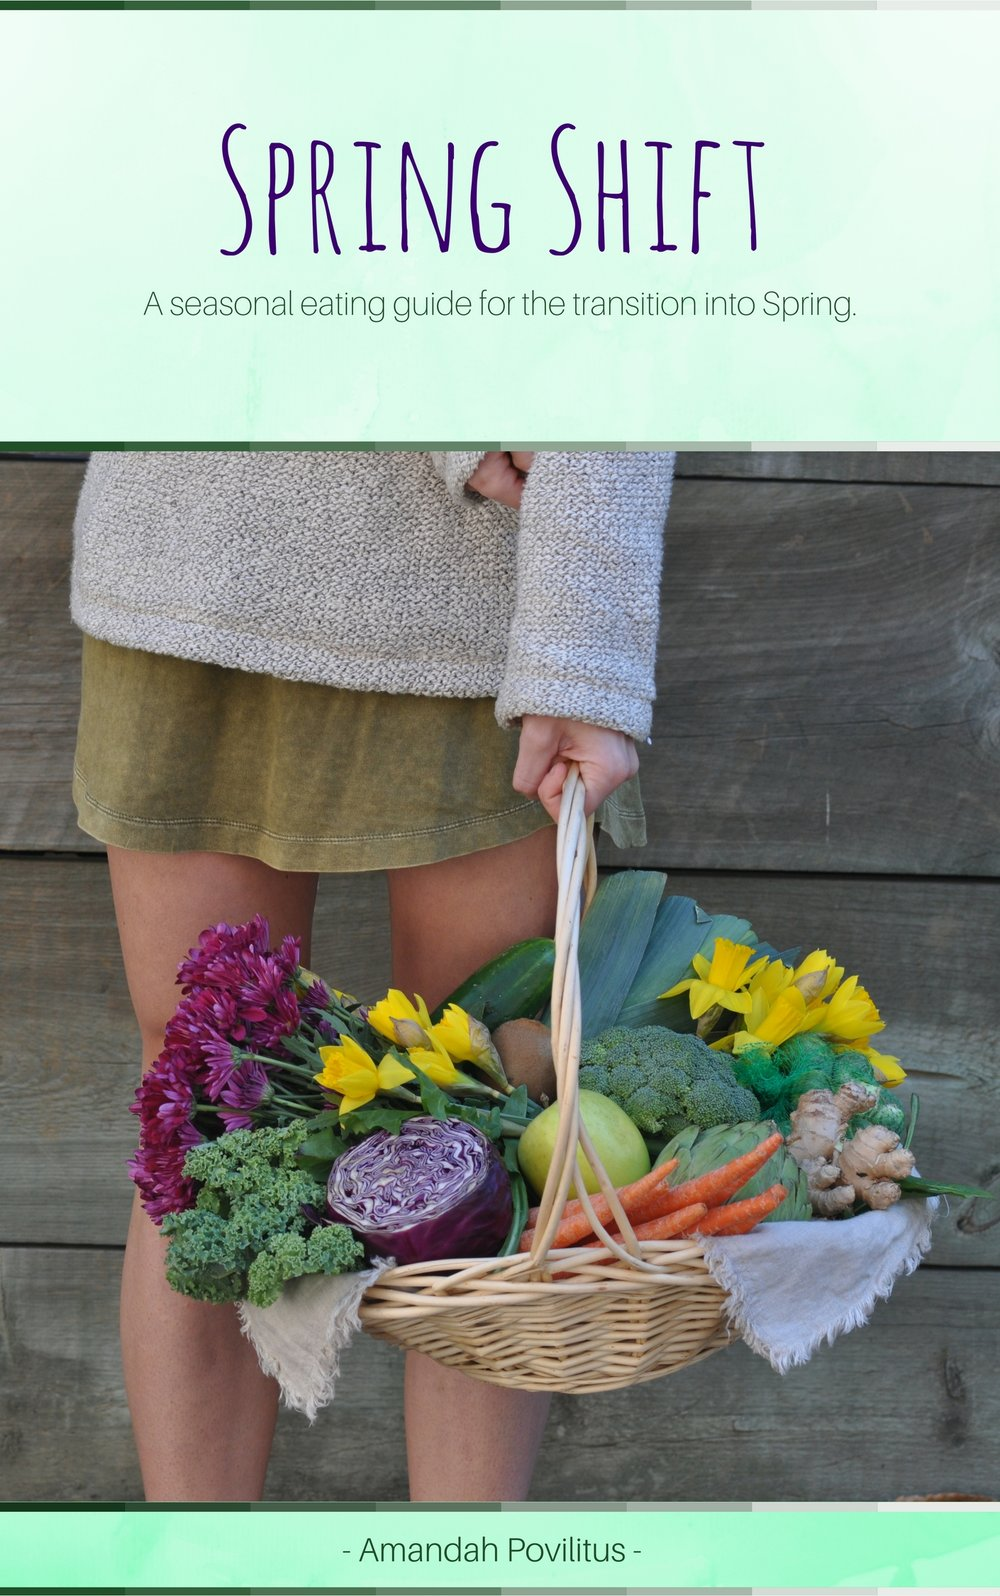 Spring Shift: my 30-page, instant download seasonal eating guide with more than 25 original recipes for the transition from winter into spring. click to learn more & to purchase!